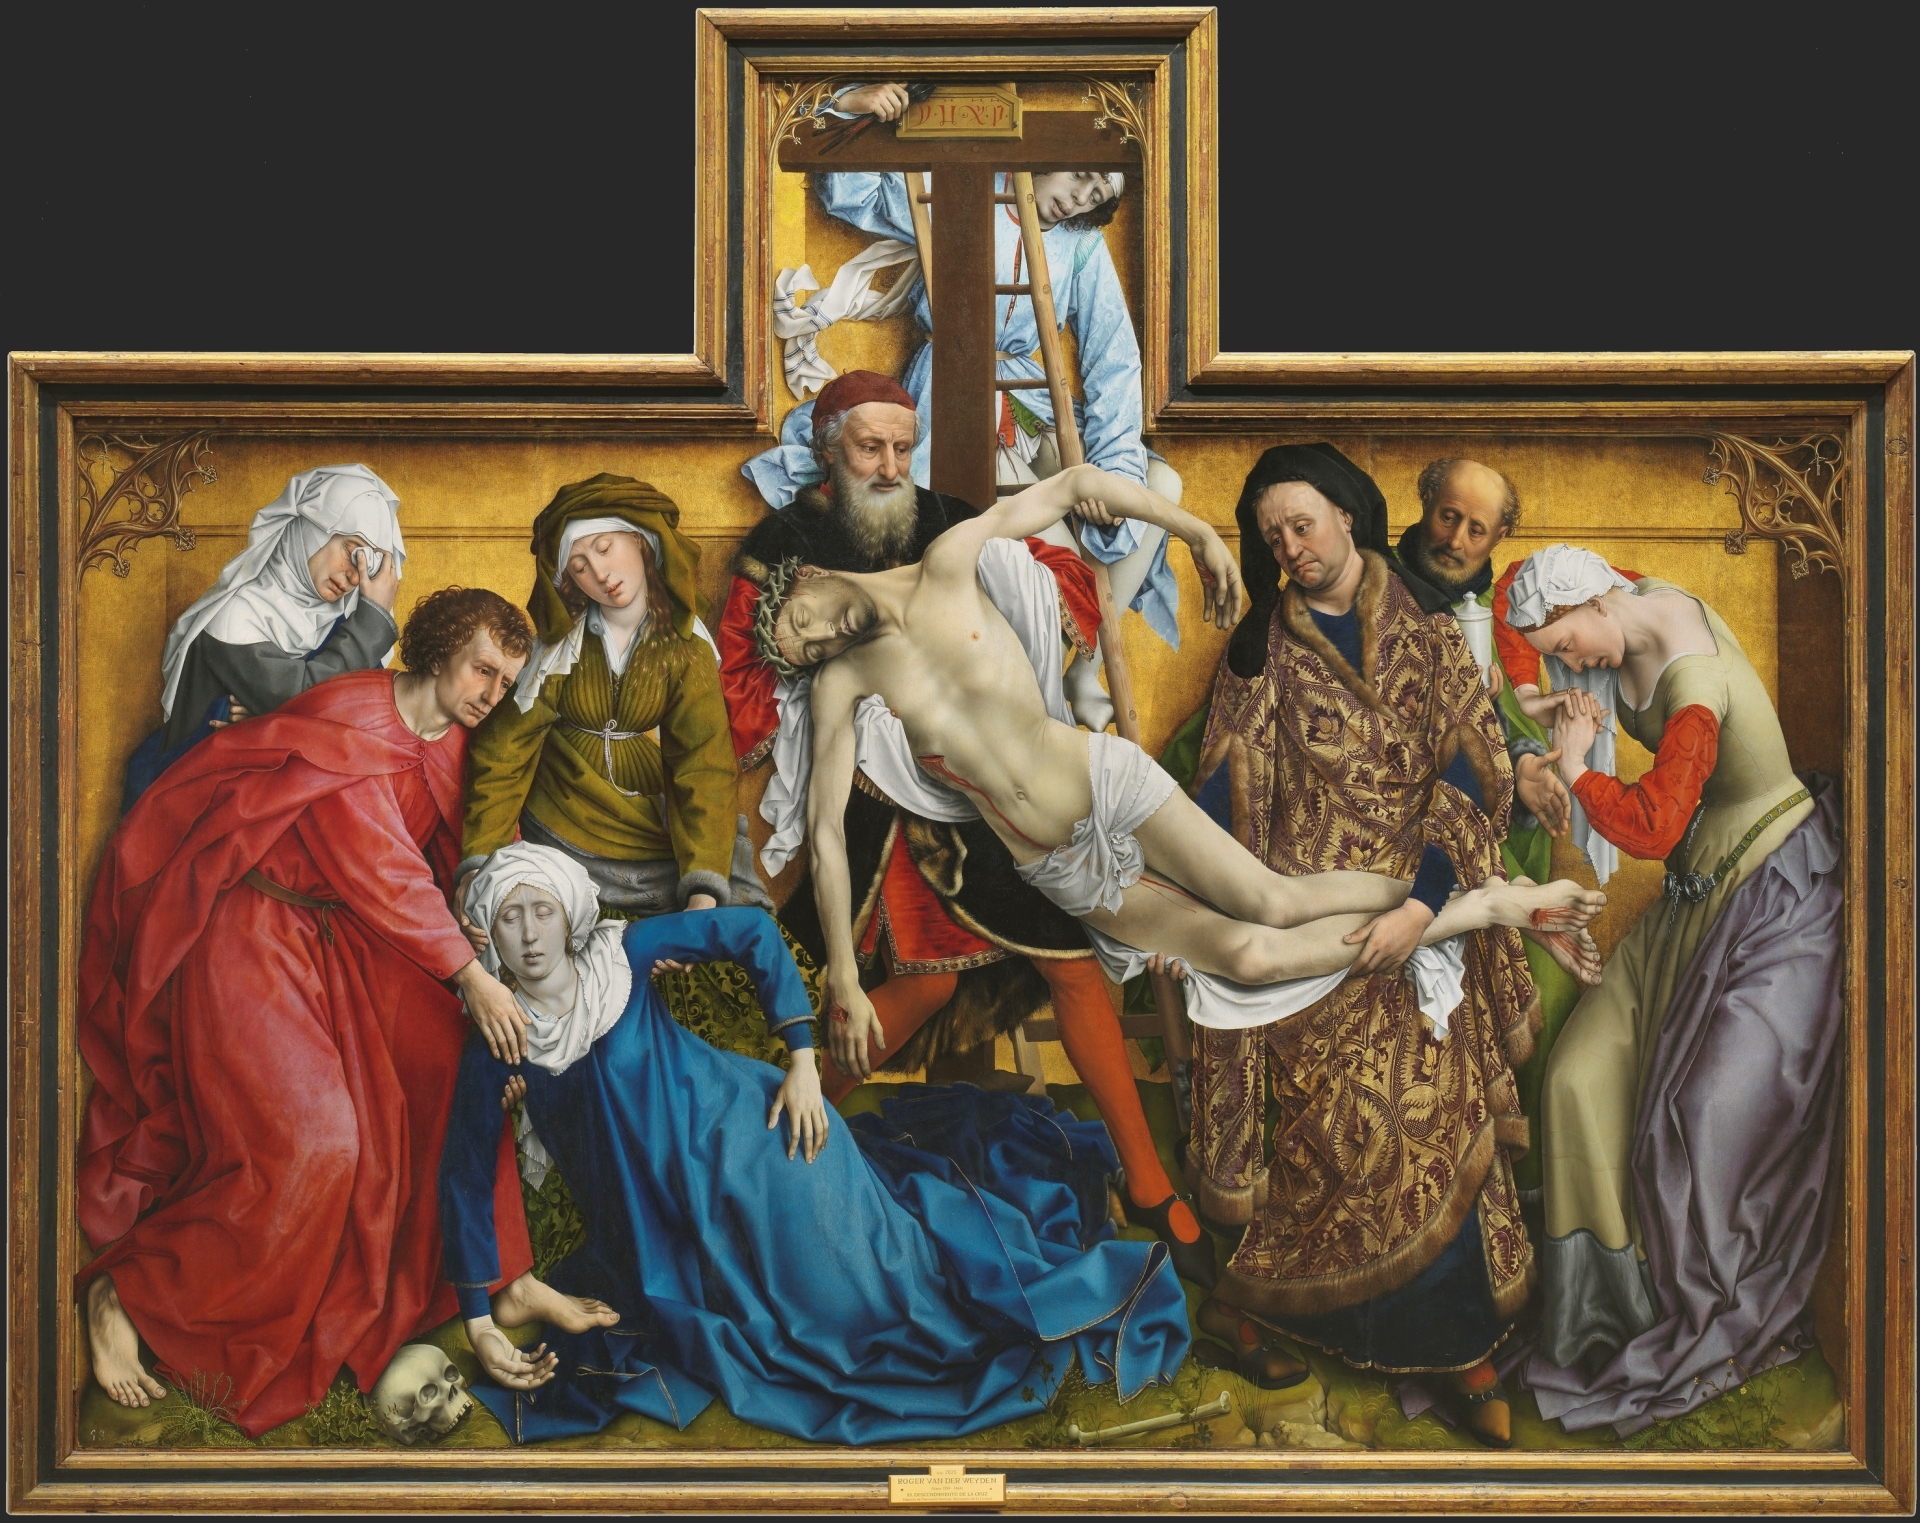 Rogier Van Der Weyden, Descent From The Cross, circa 1438